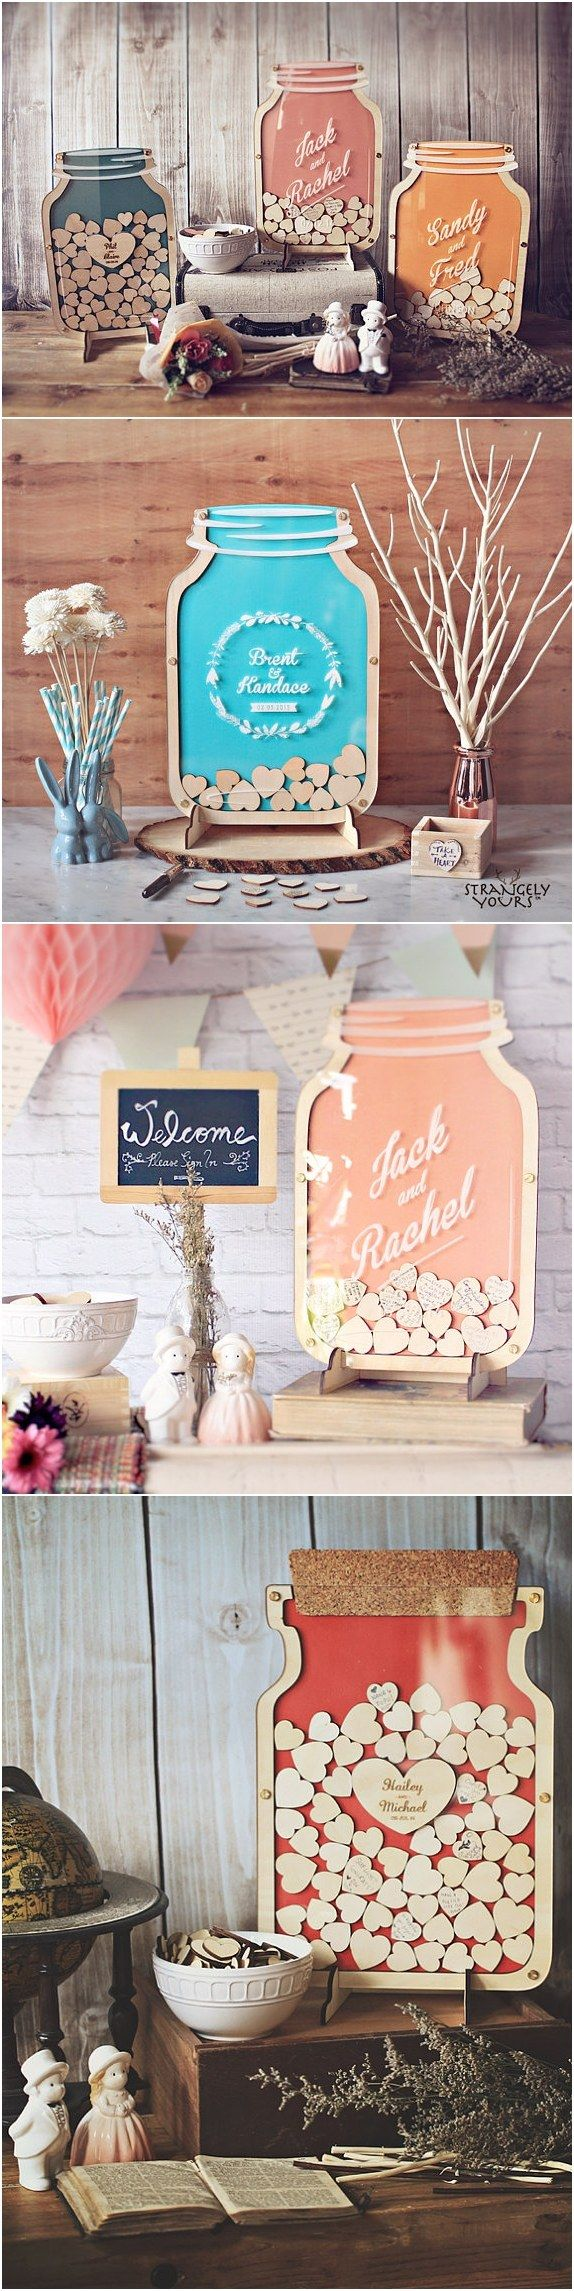 Etsy Finds 18 Rustic Country Wood Wedding Guest Books